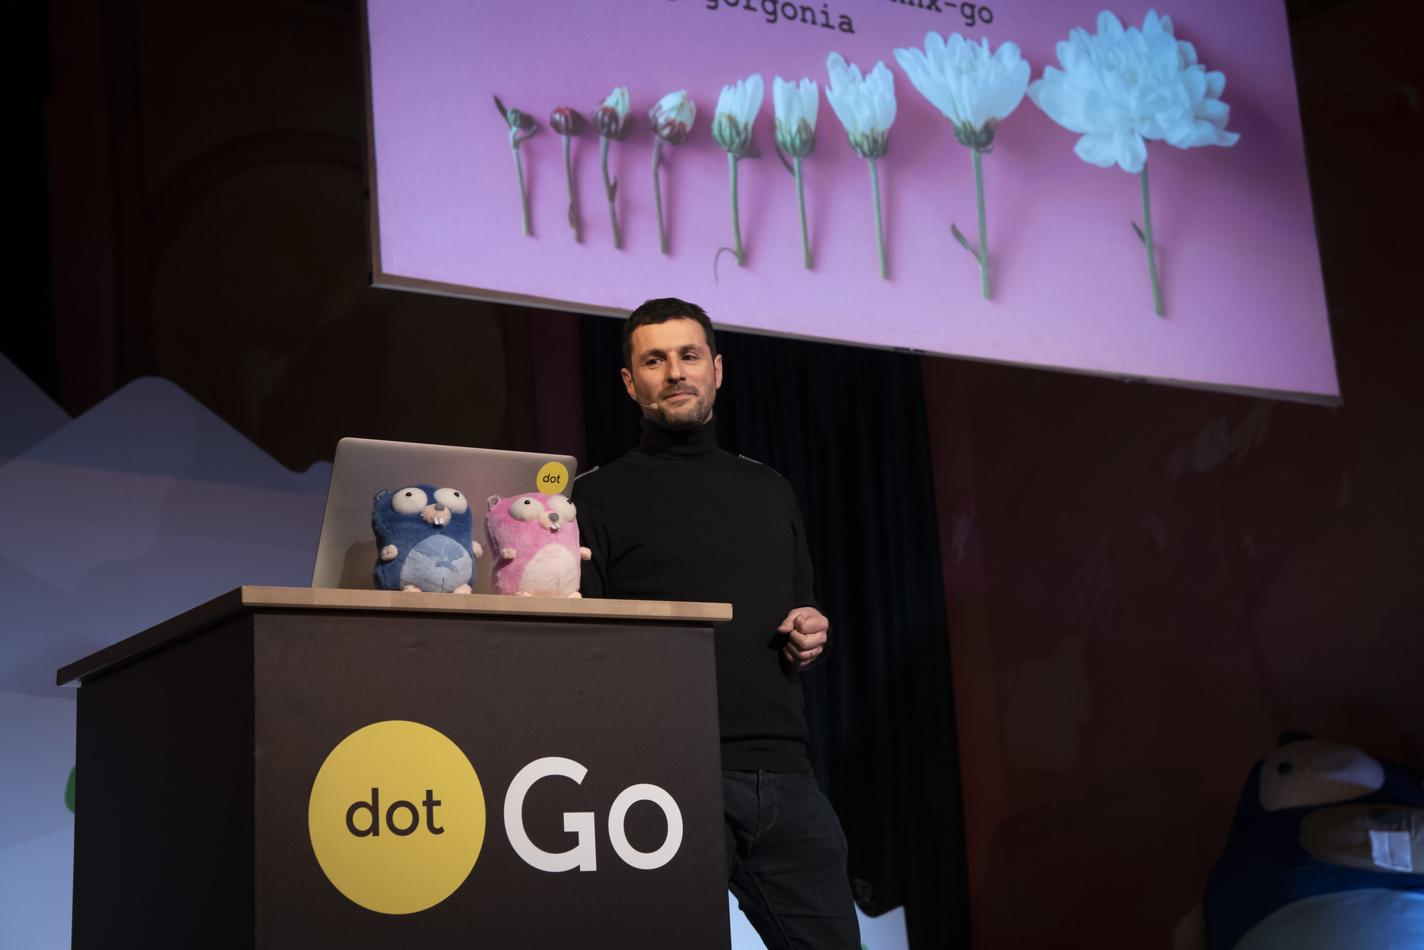 ONNX-Go, neural networks made easy - Olivier Wulveryck at dotGo 2019